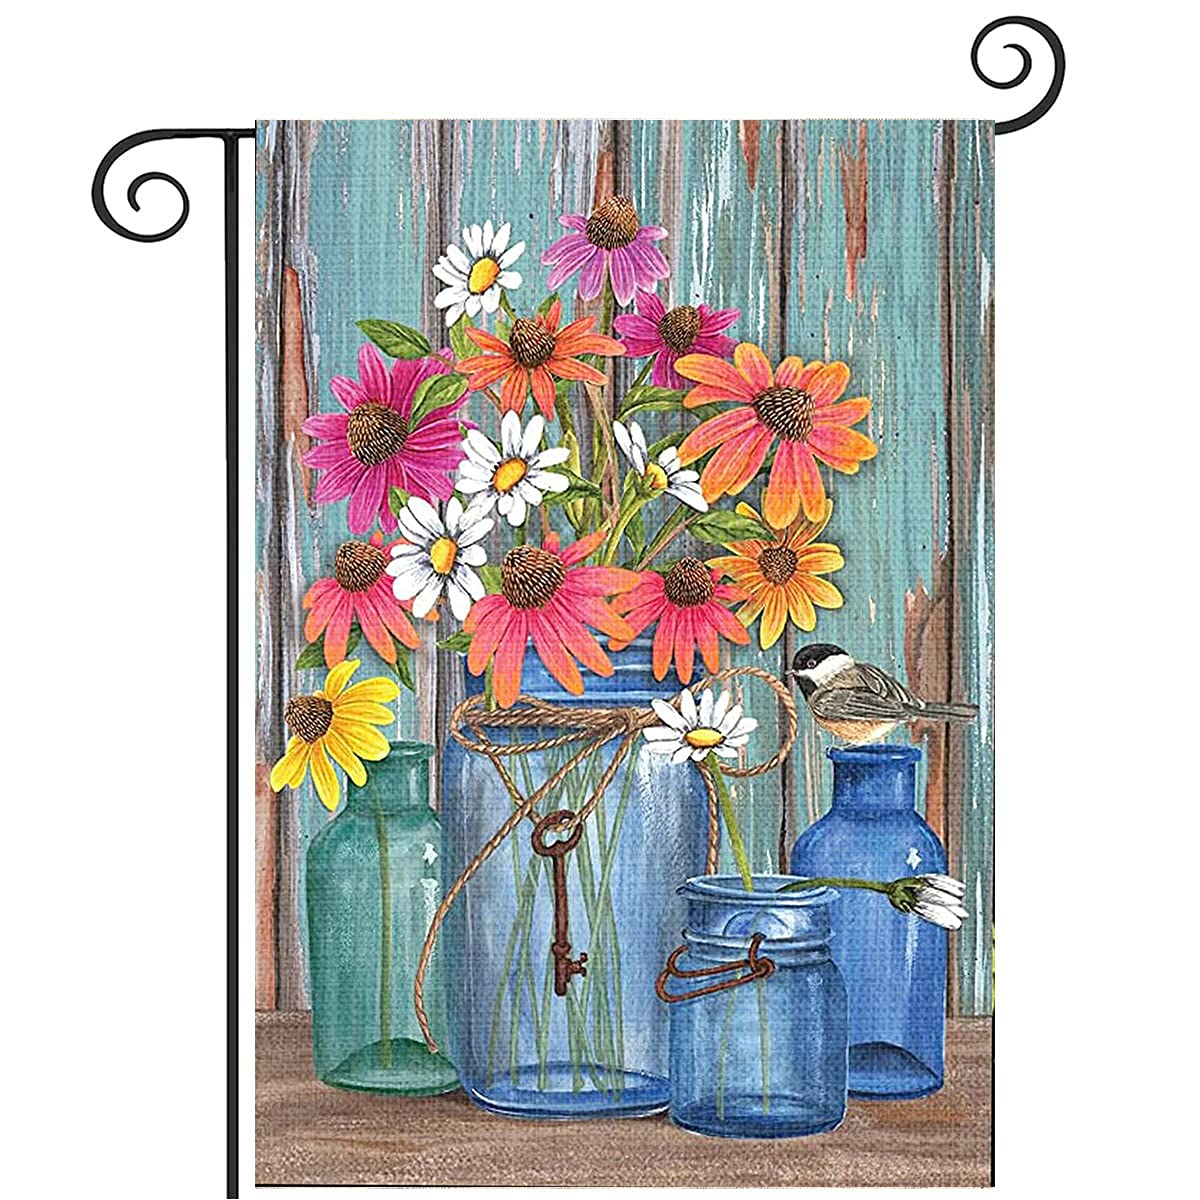 PINEPOEM Summer Garden Flag 12 x 18 Inch, Double Sided Vertical Flags for Yard Outdoor Decration, Garden Flag With Birds & Flower, Flags Decorative House Flags, Small Garden Flags for Outside & Flower, Flags Decorative House Flags, Small Garden Flags for Outside